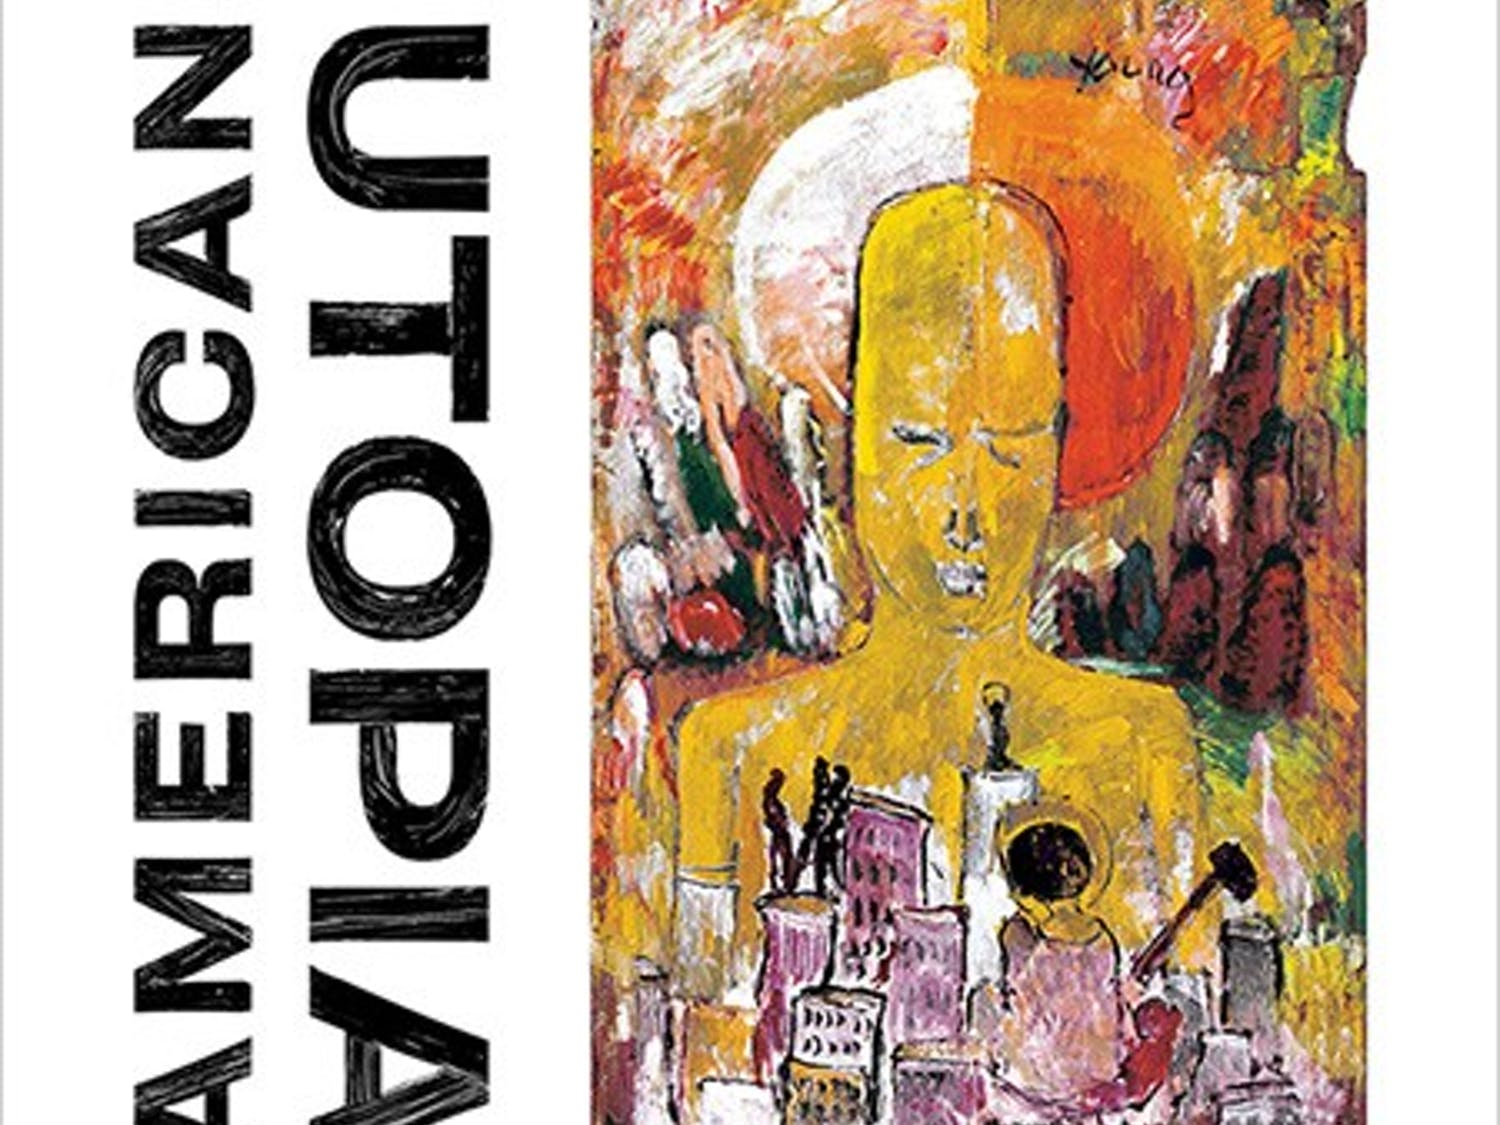 As a whole,American Utopia simply isn't captivating enough to retain interest past a few listens at most.